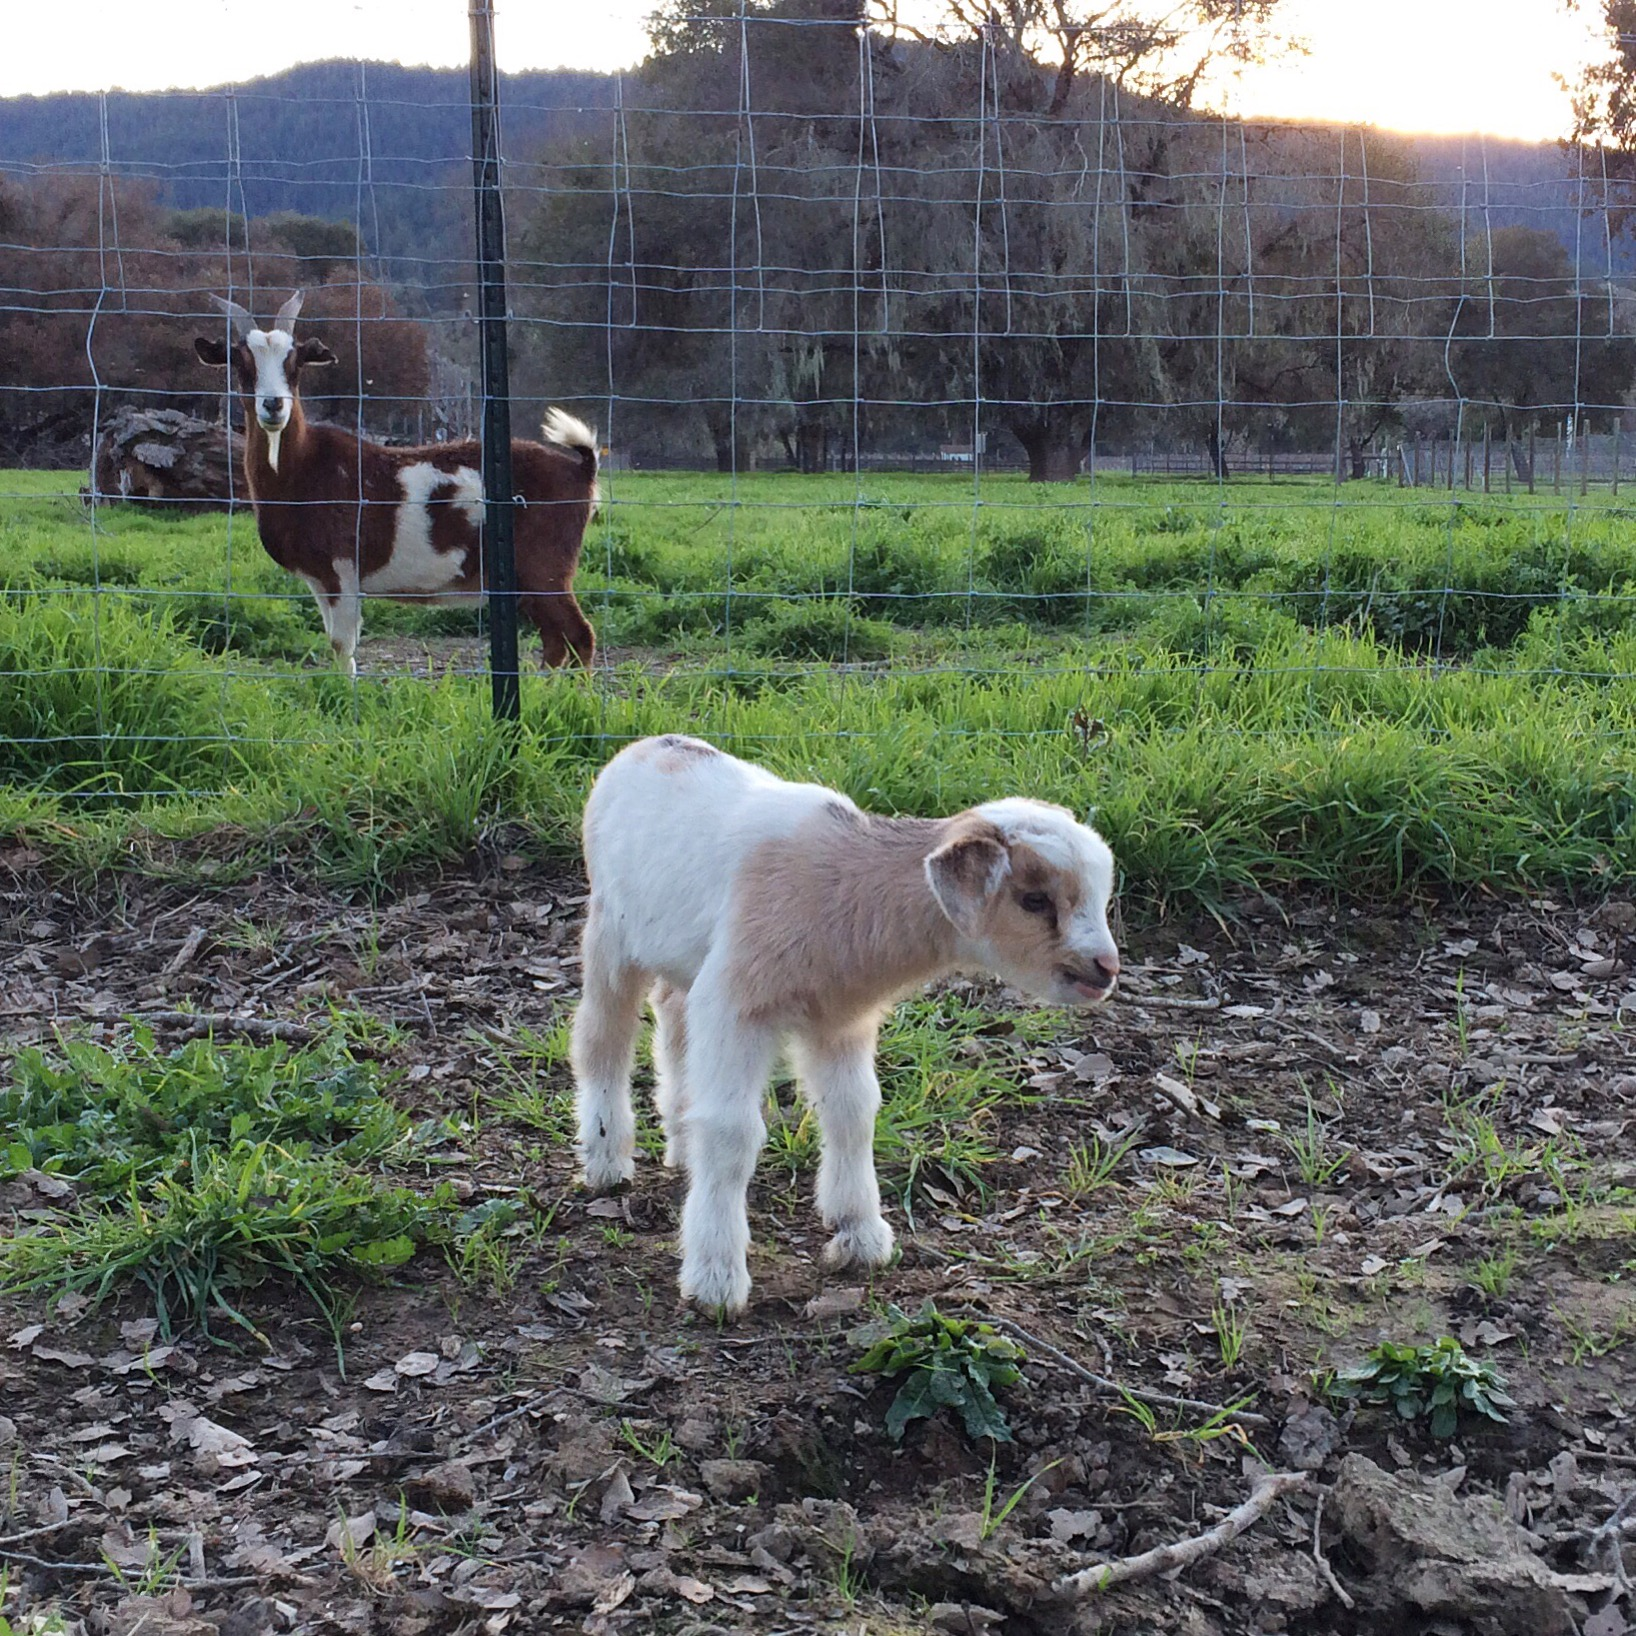 Baby goat at Anderson Valley Brewing Company